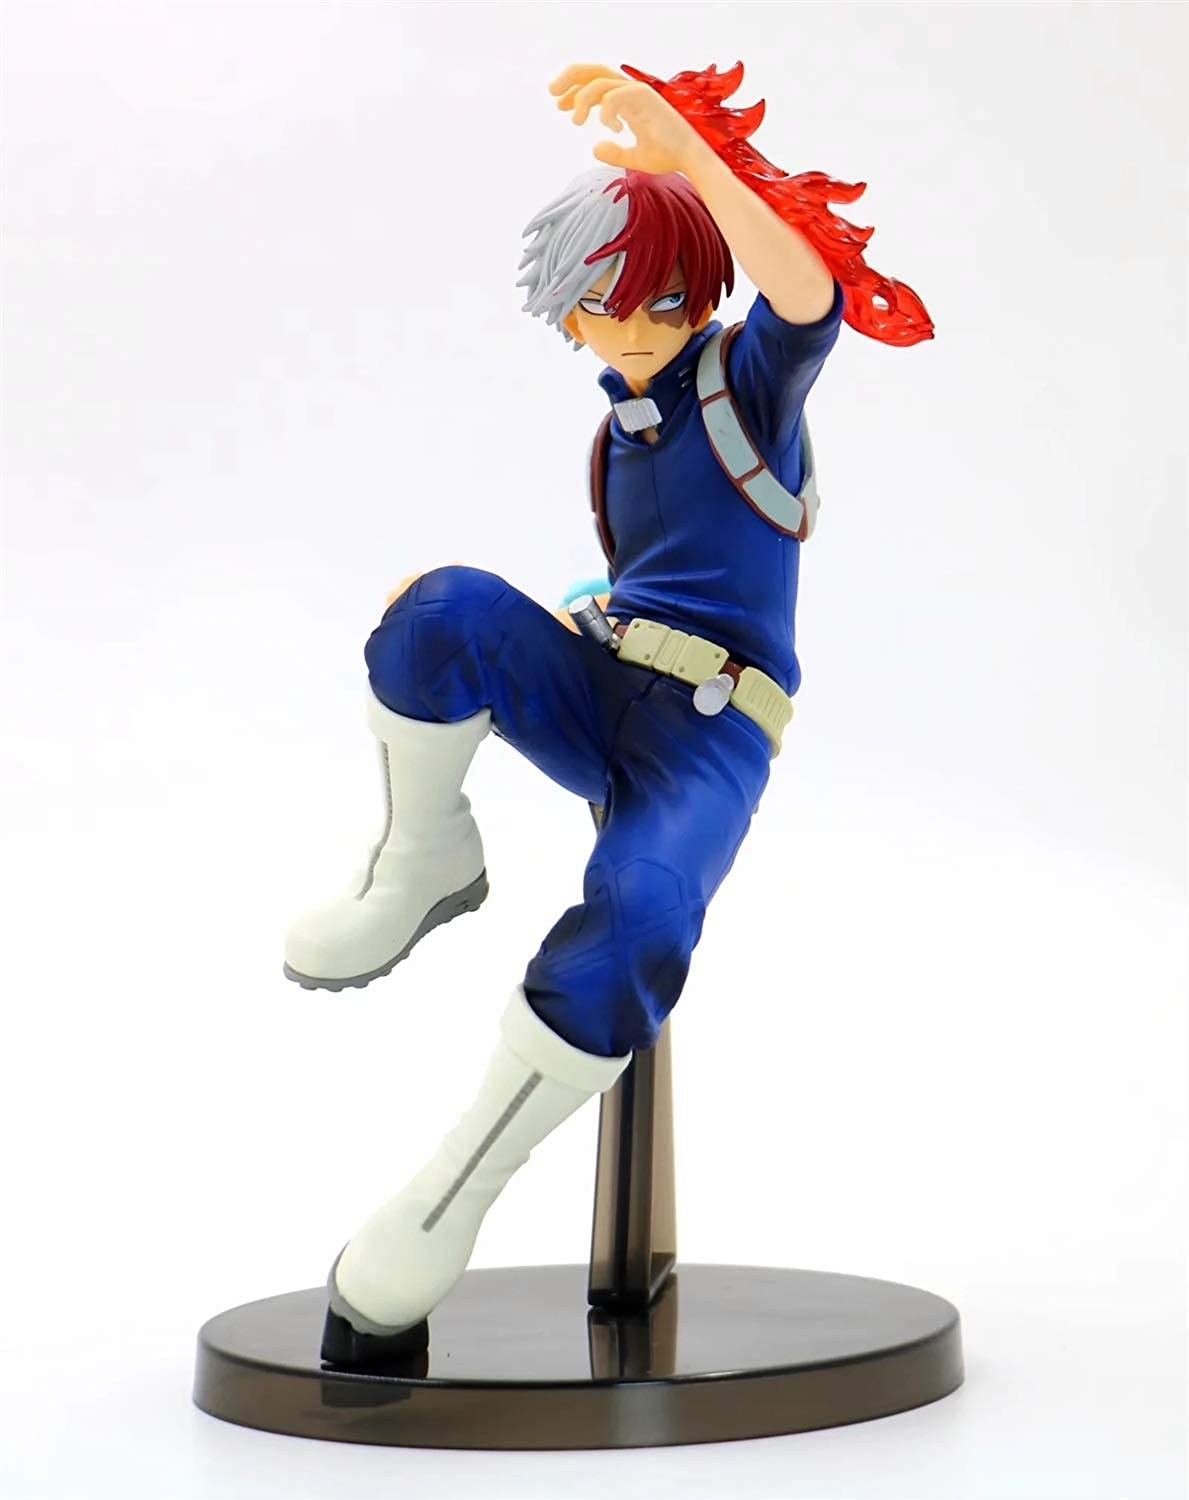 LLDDP Anime Model Persona Statue Anime Character Simulation My Hero College 3 Generation with Base Art Home Decoration Anime Statue (color   A)